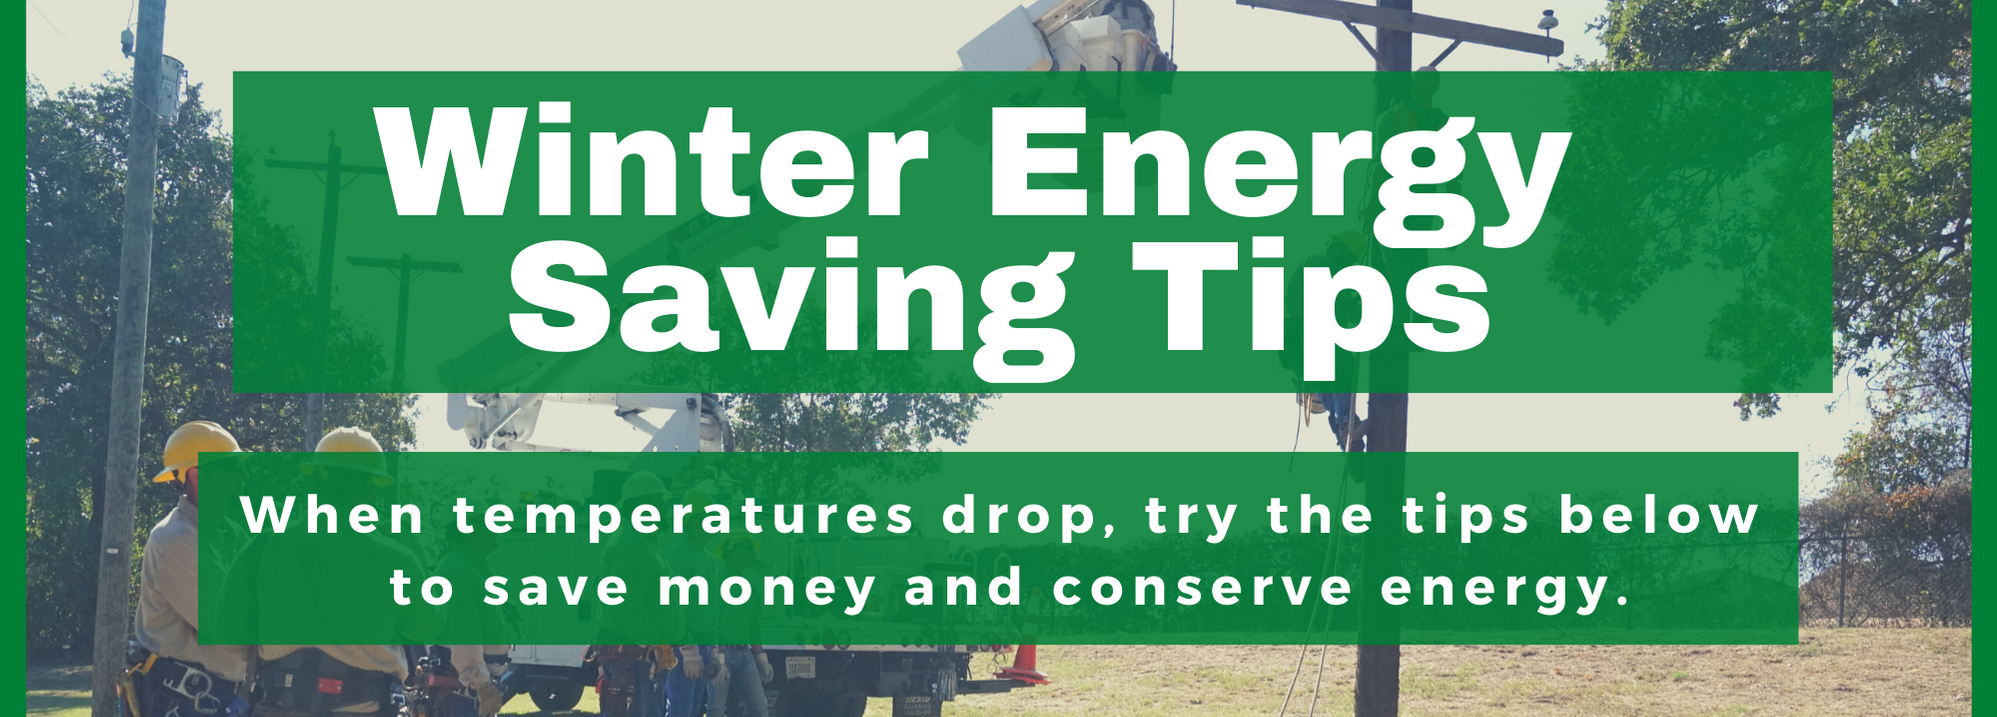 W. Electric Energy Saving Tips -  Winter - Website Banner